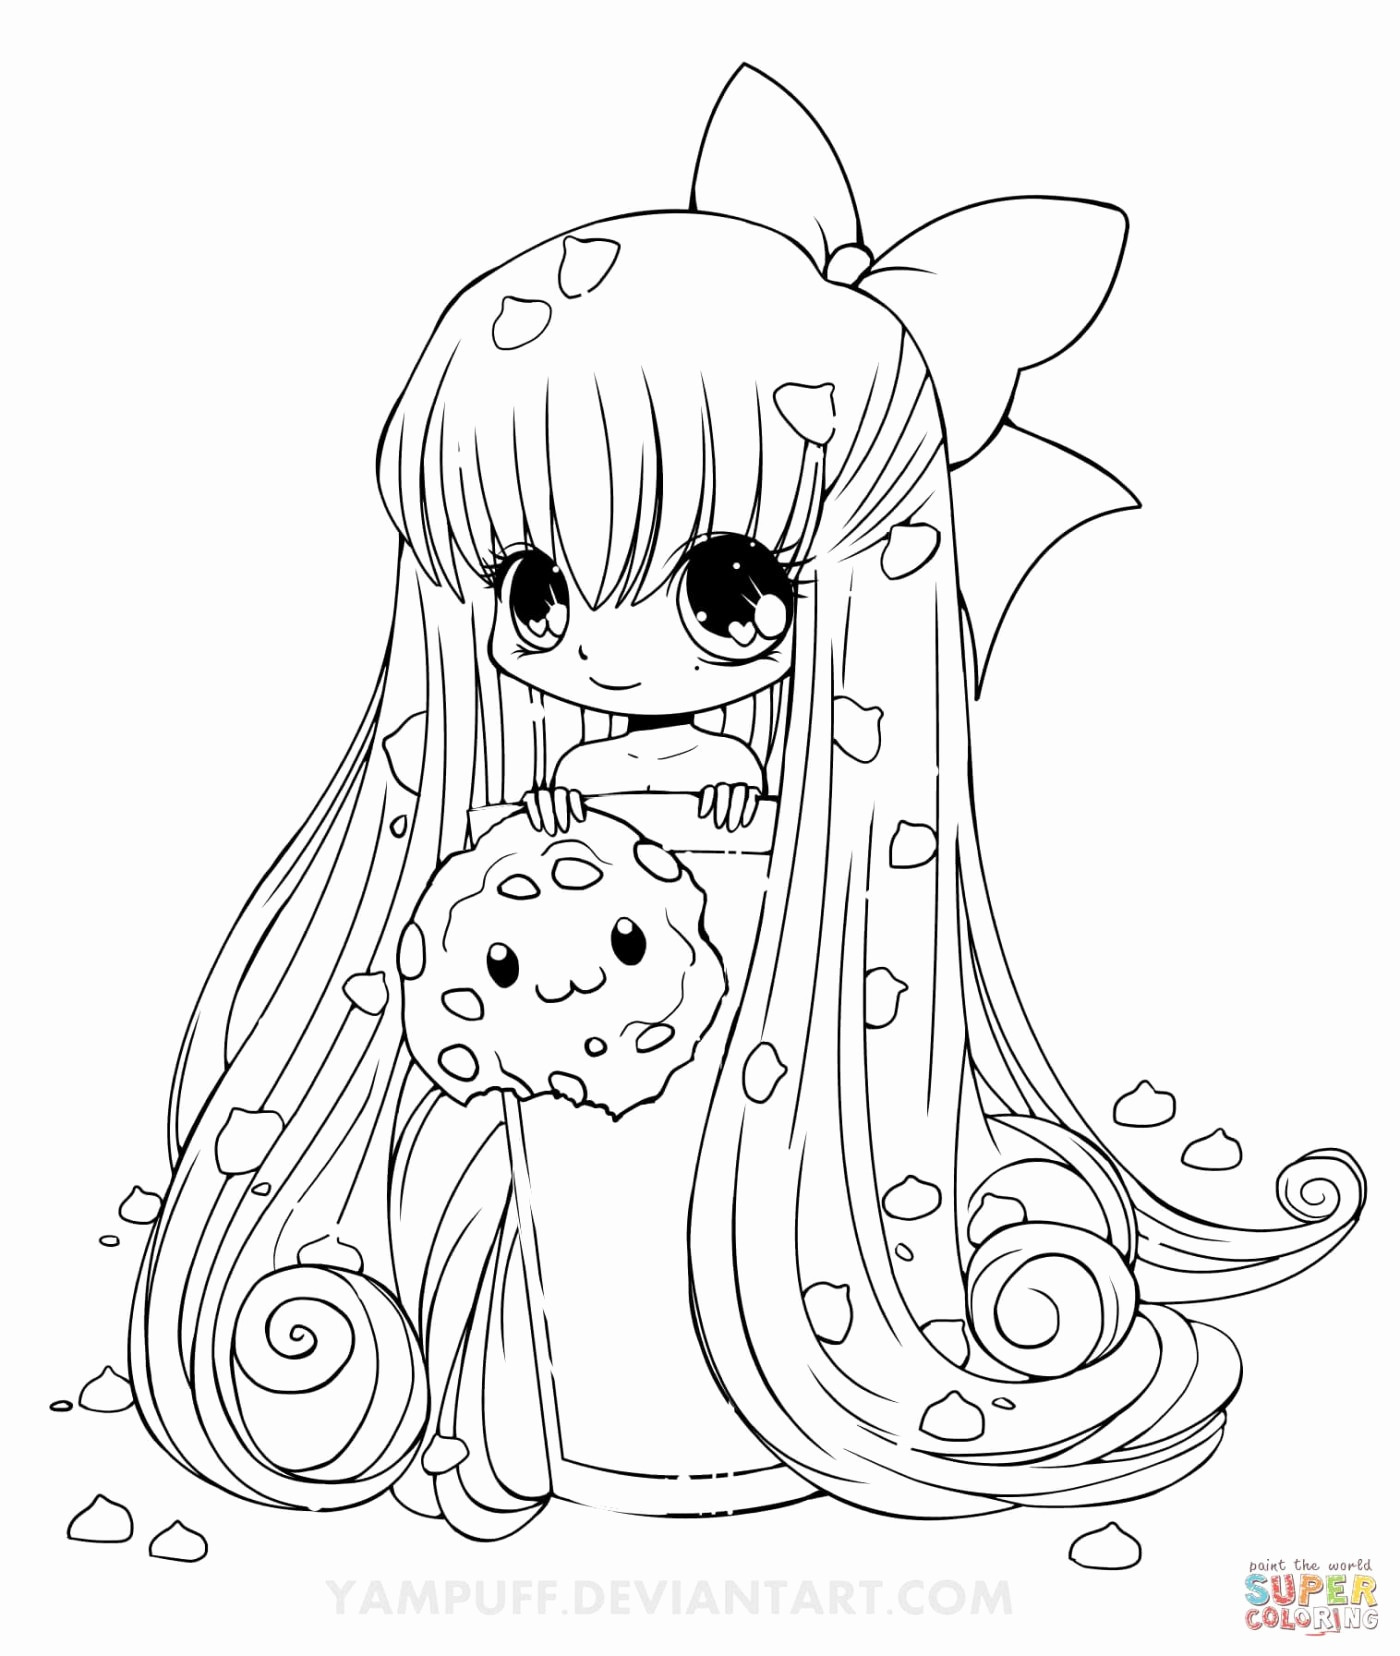 Cute Girl Coloring Pages Anime Girl Coloring Pages Cute Chibi Kawaii Fox  Stupendous Online - birijus.com